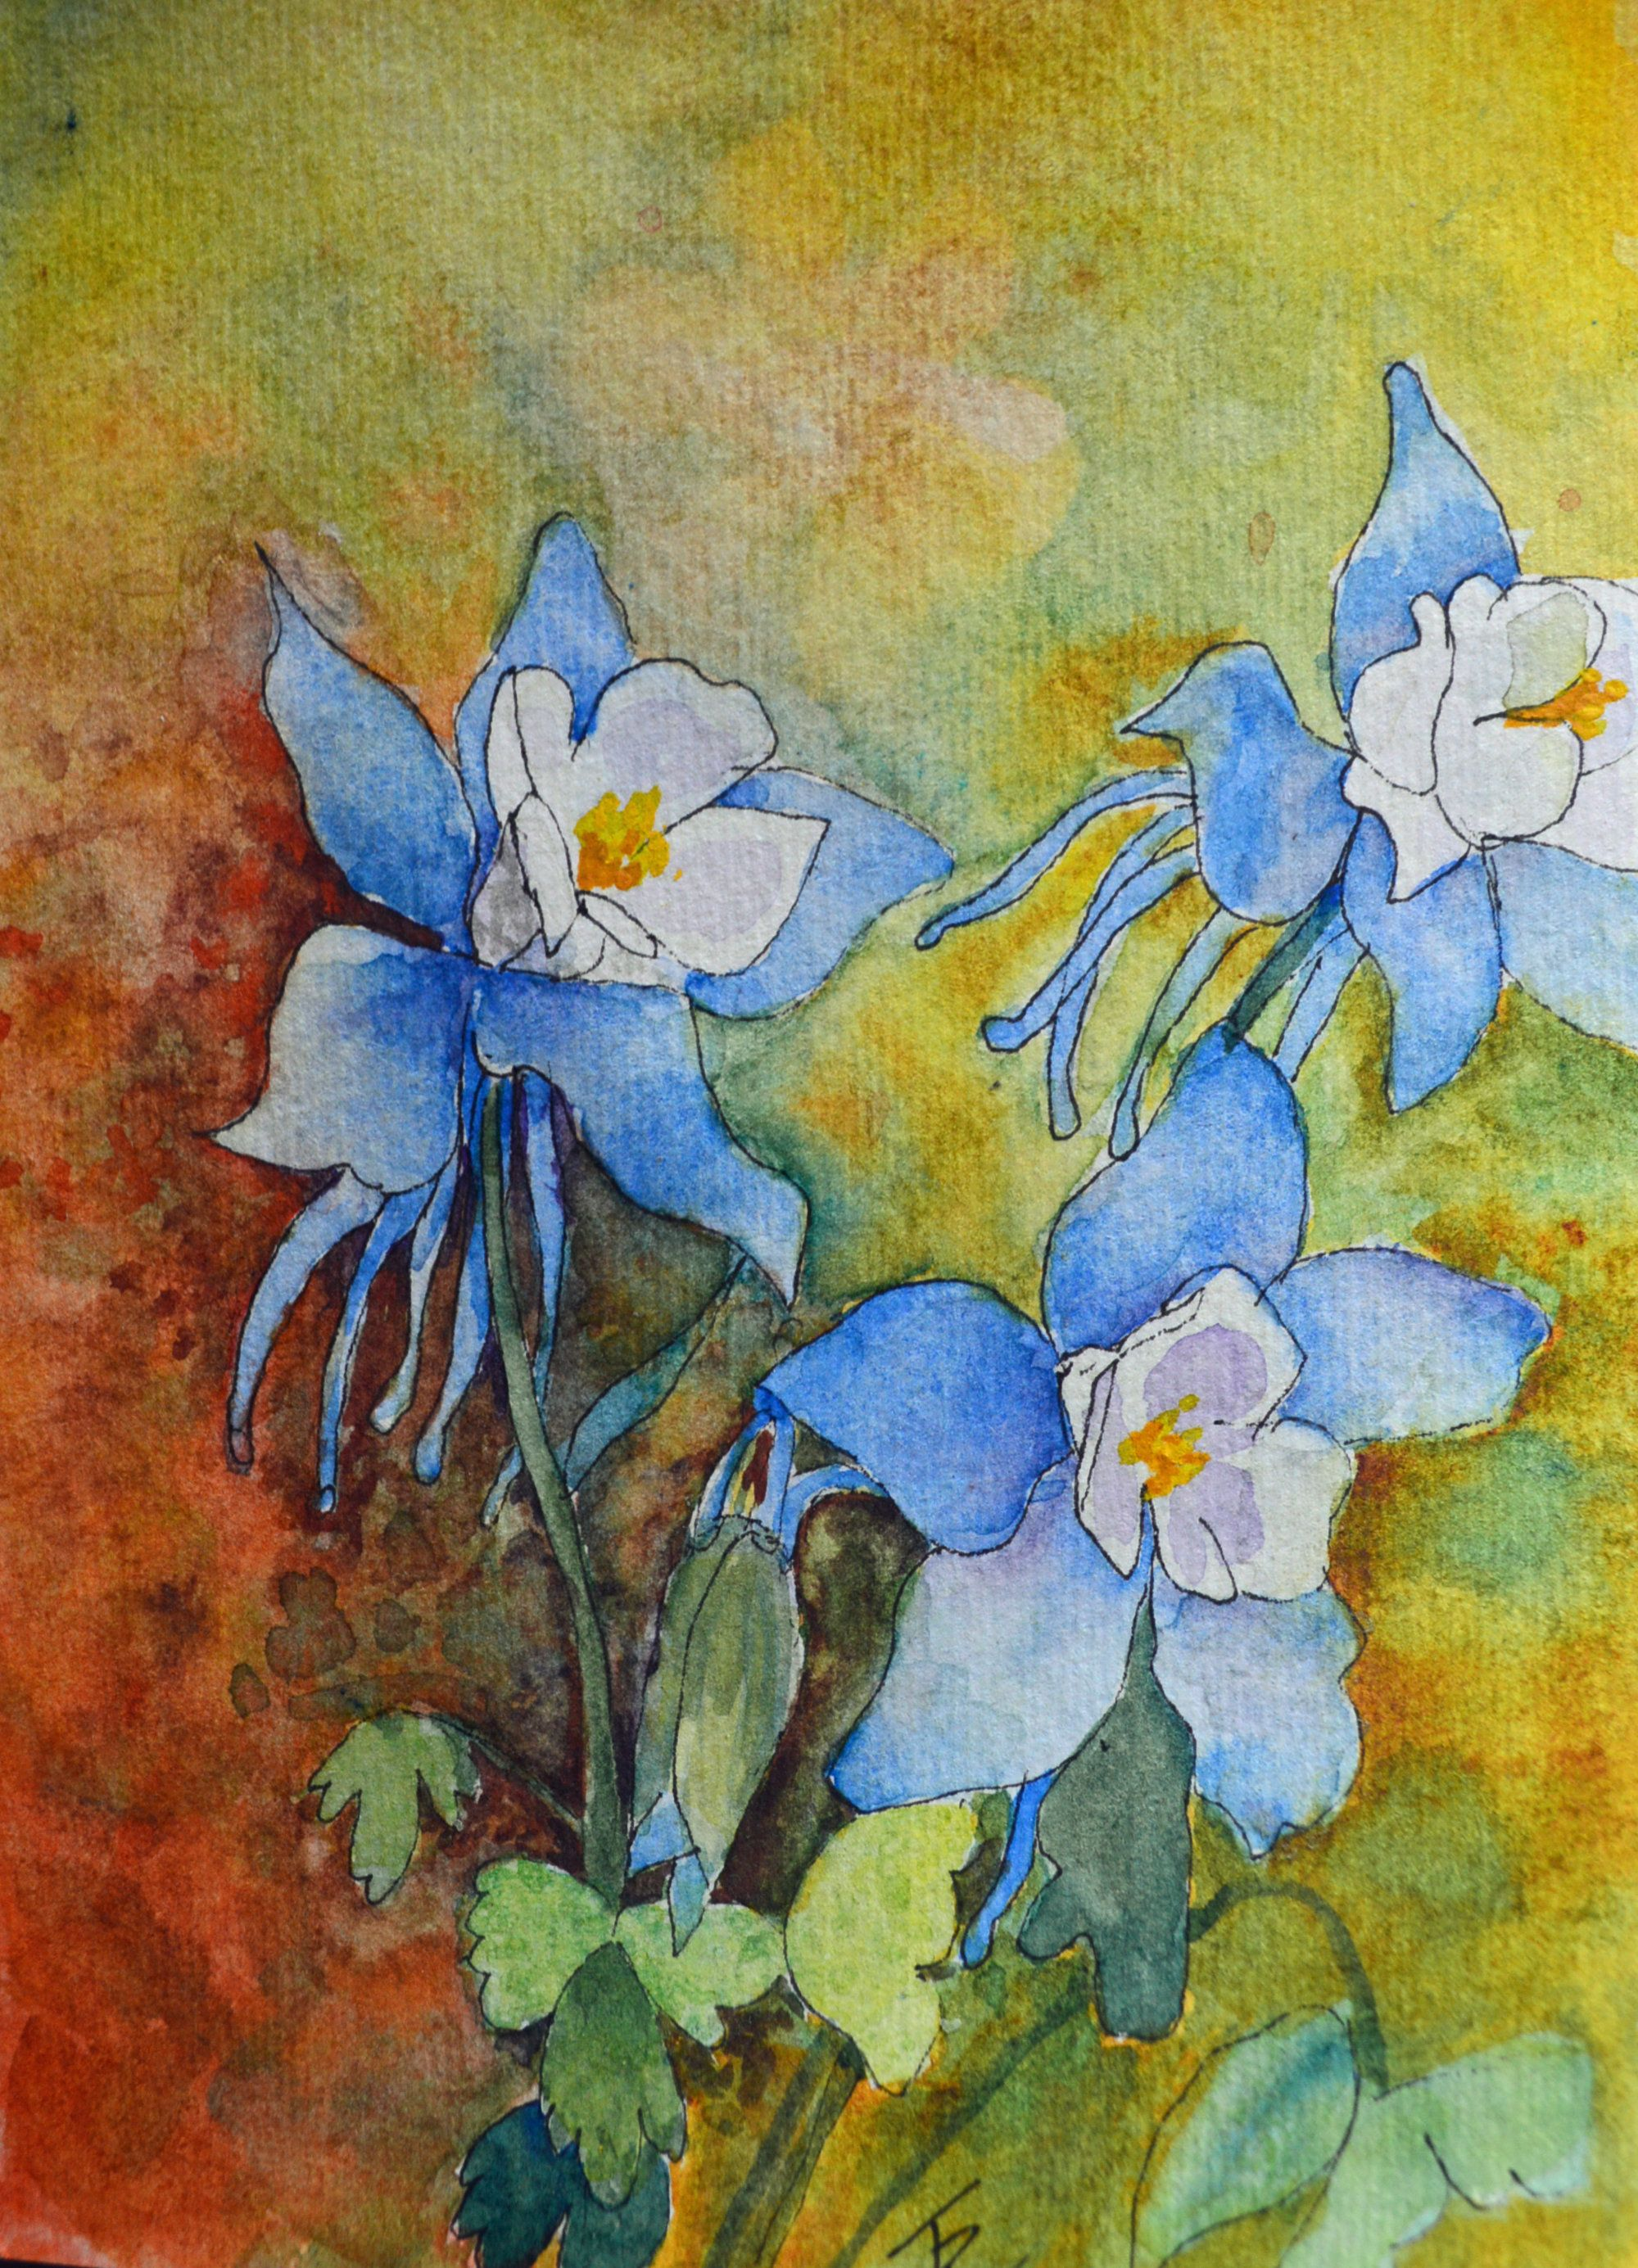 Pin By Terri Robertson Fine Art On Subject Matter In 2020 Spring Painting Watercolor Wall Art Watercolor And Ink